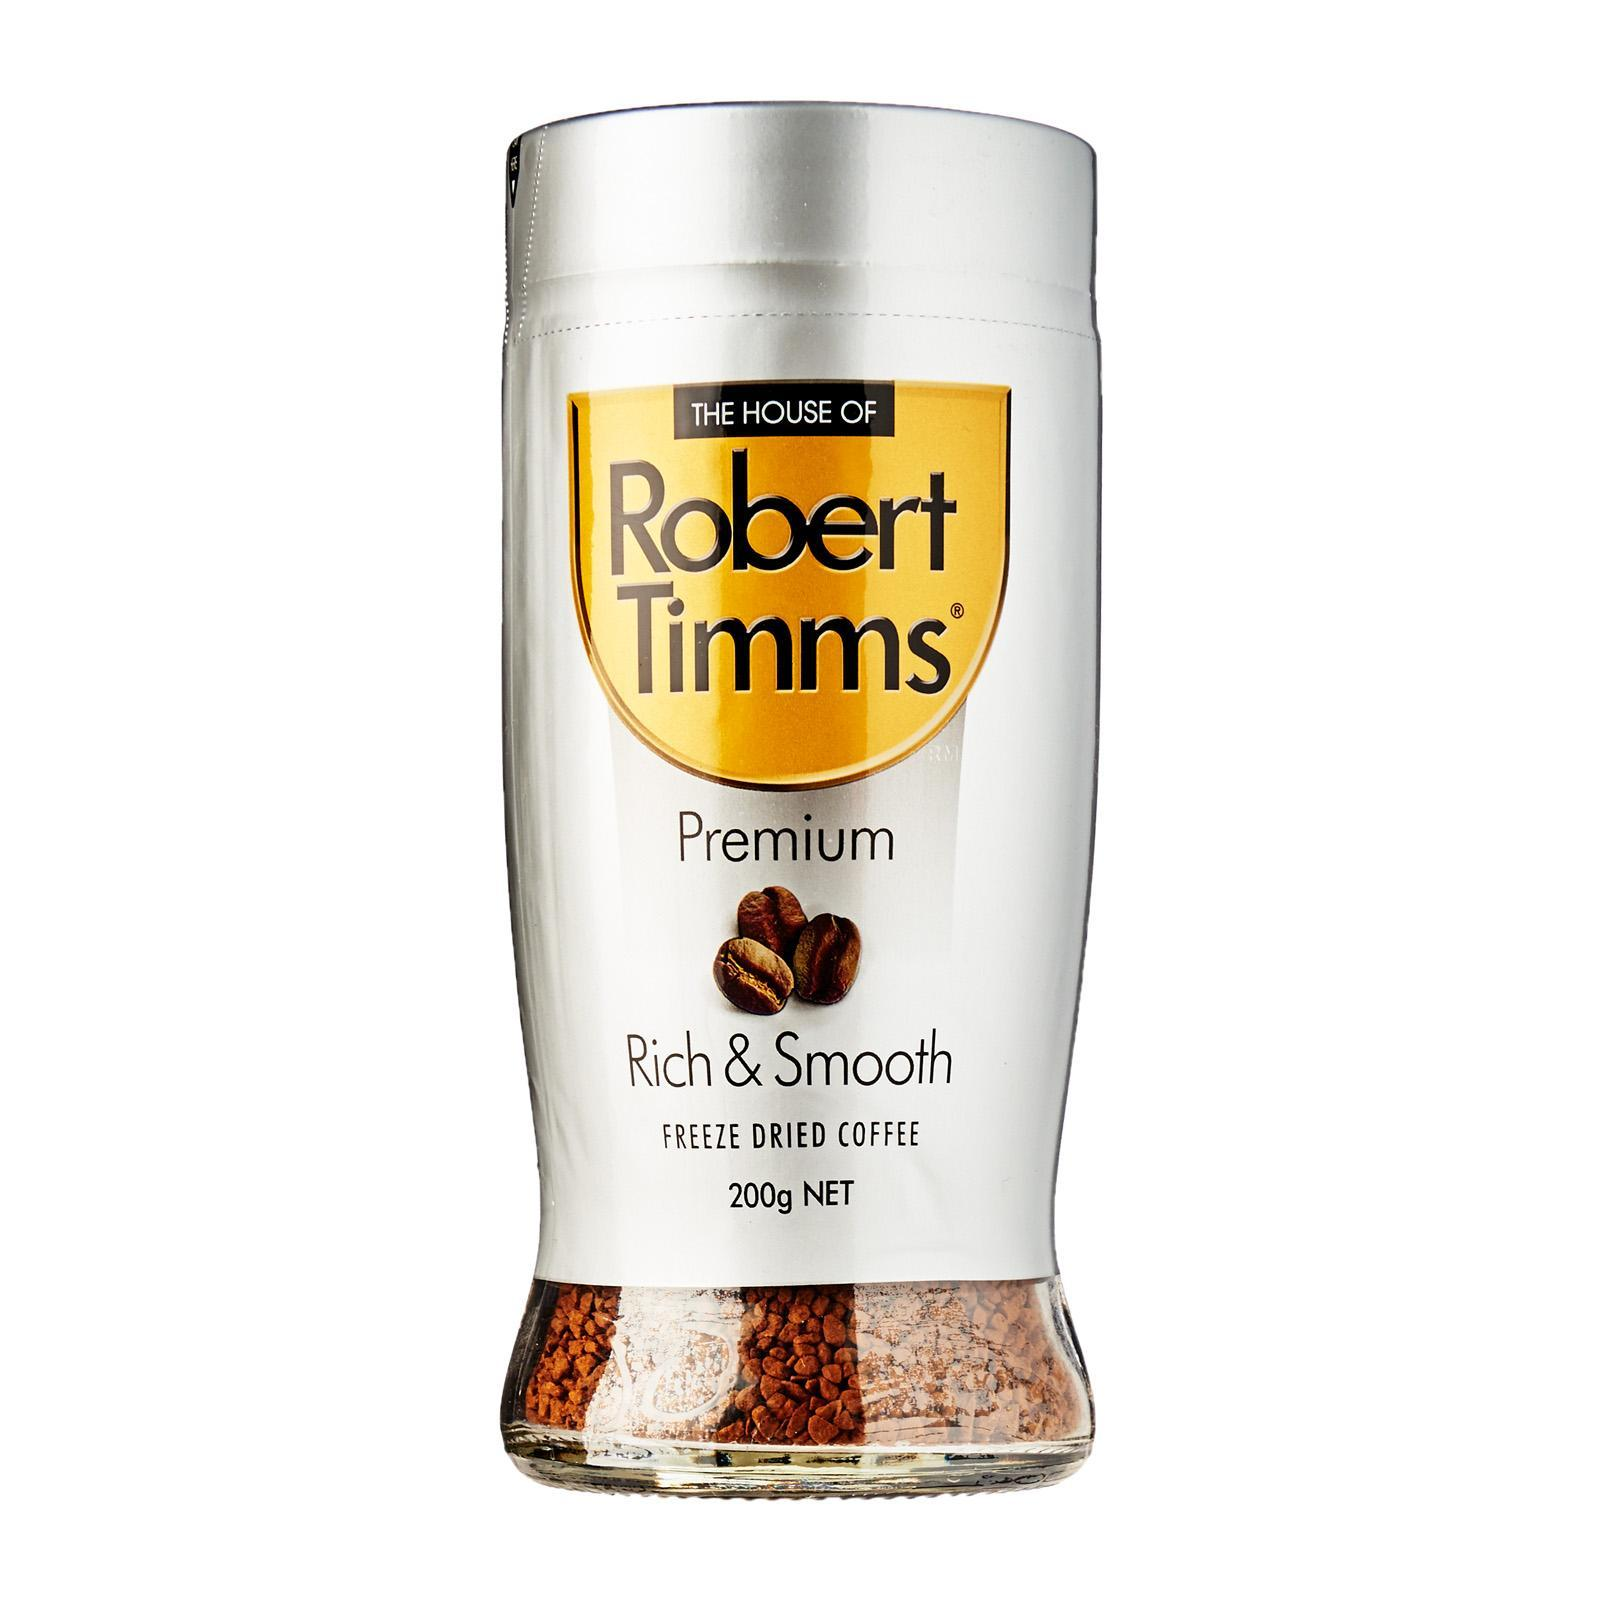 Robert Timms Premium Rich And Smooth Freeze Dried Coffee - 200G